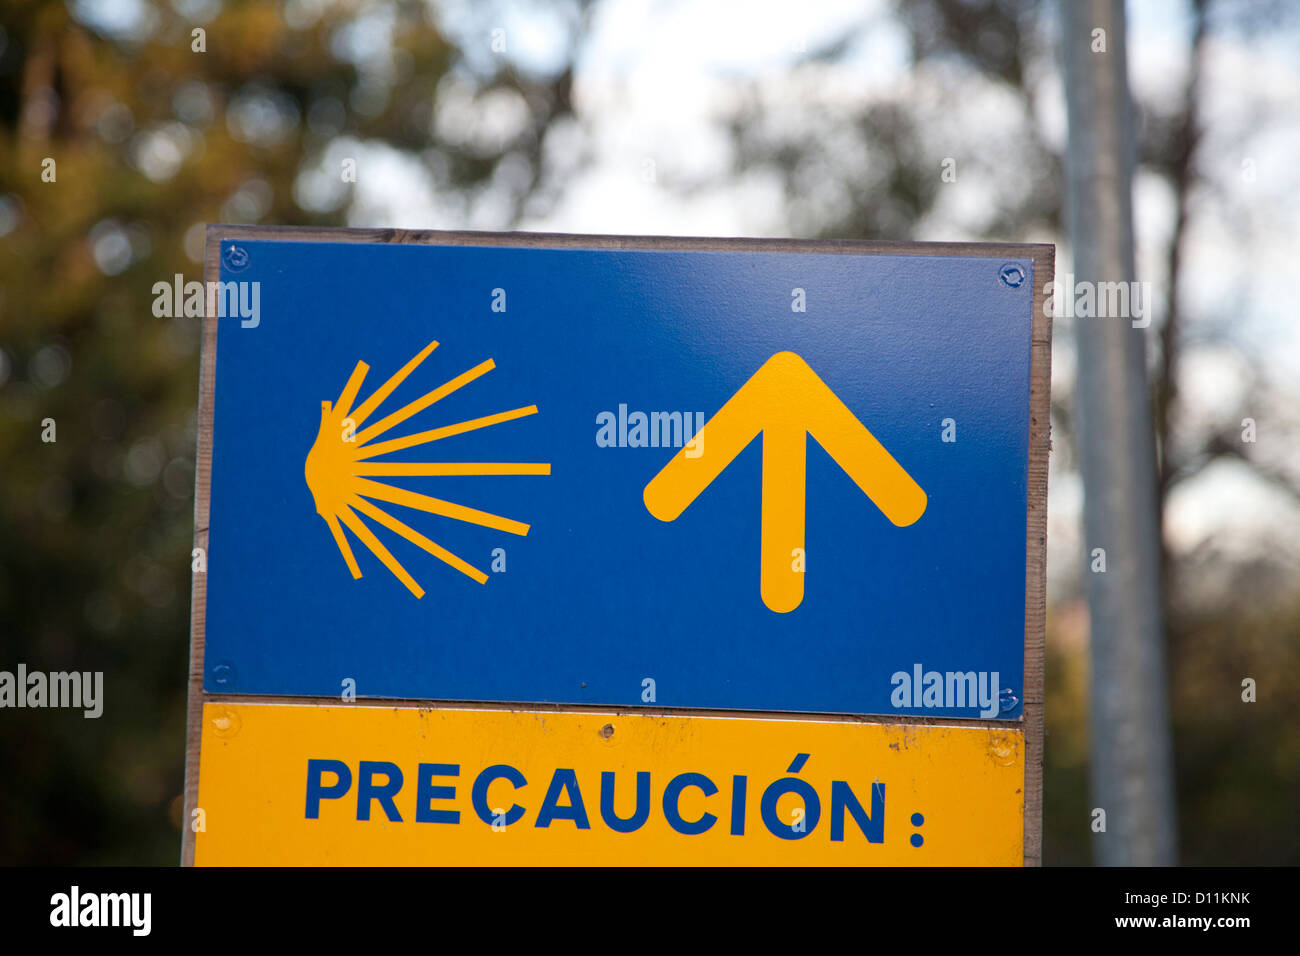 Camino precaution sign, with stylized scallop shell and yellow arrow. Often seen just before the pilgrim path crossed - Stock Image